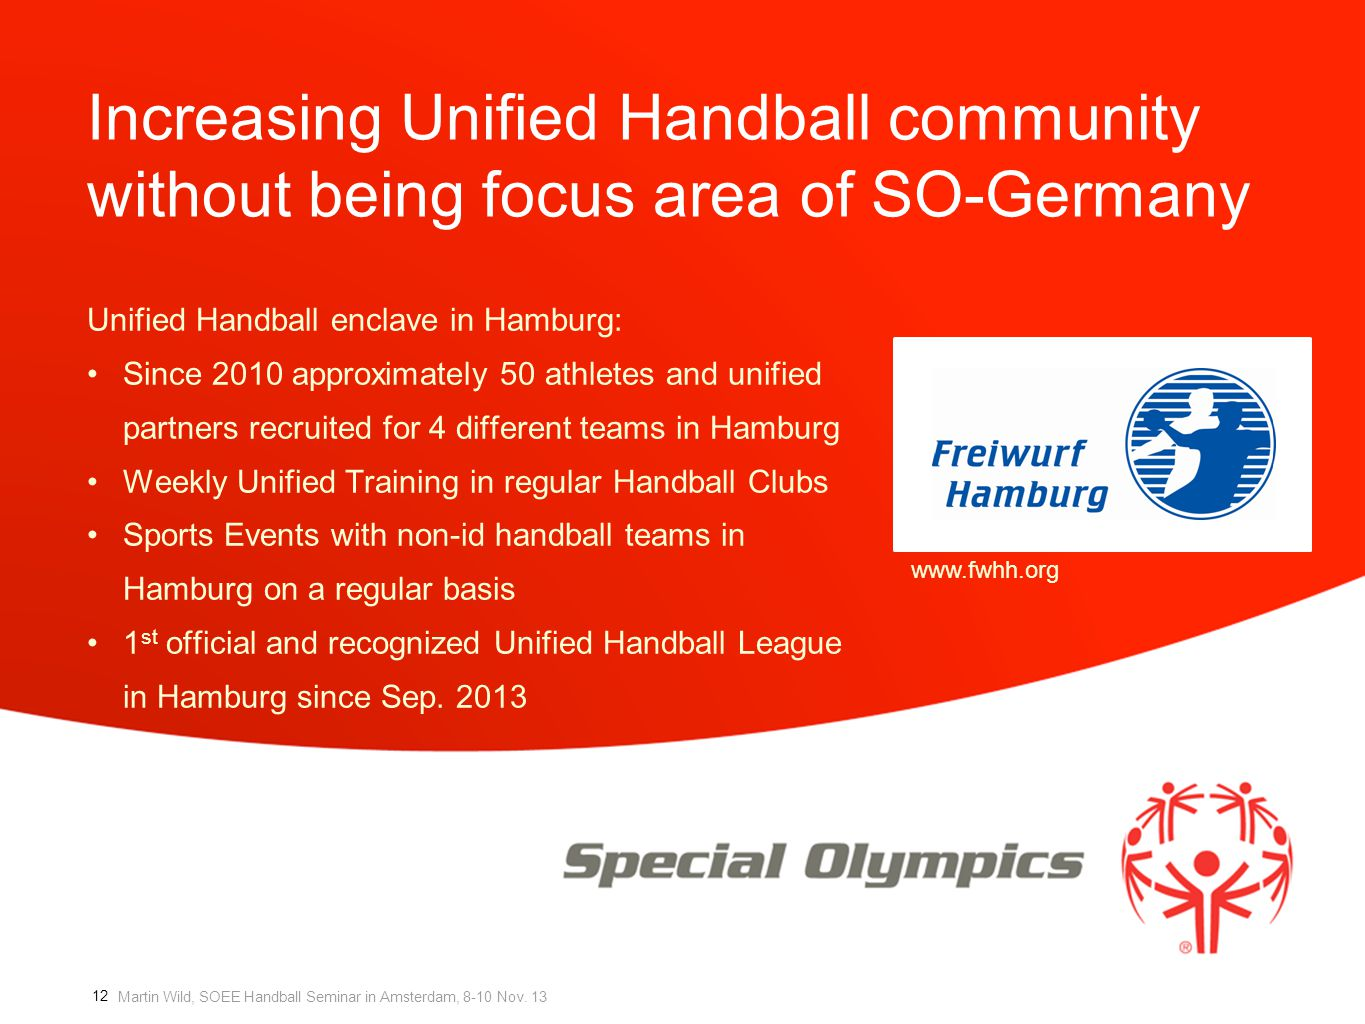 Increasing Unified Handball community without being focus area of SO-Germany